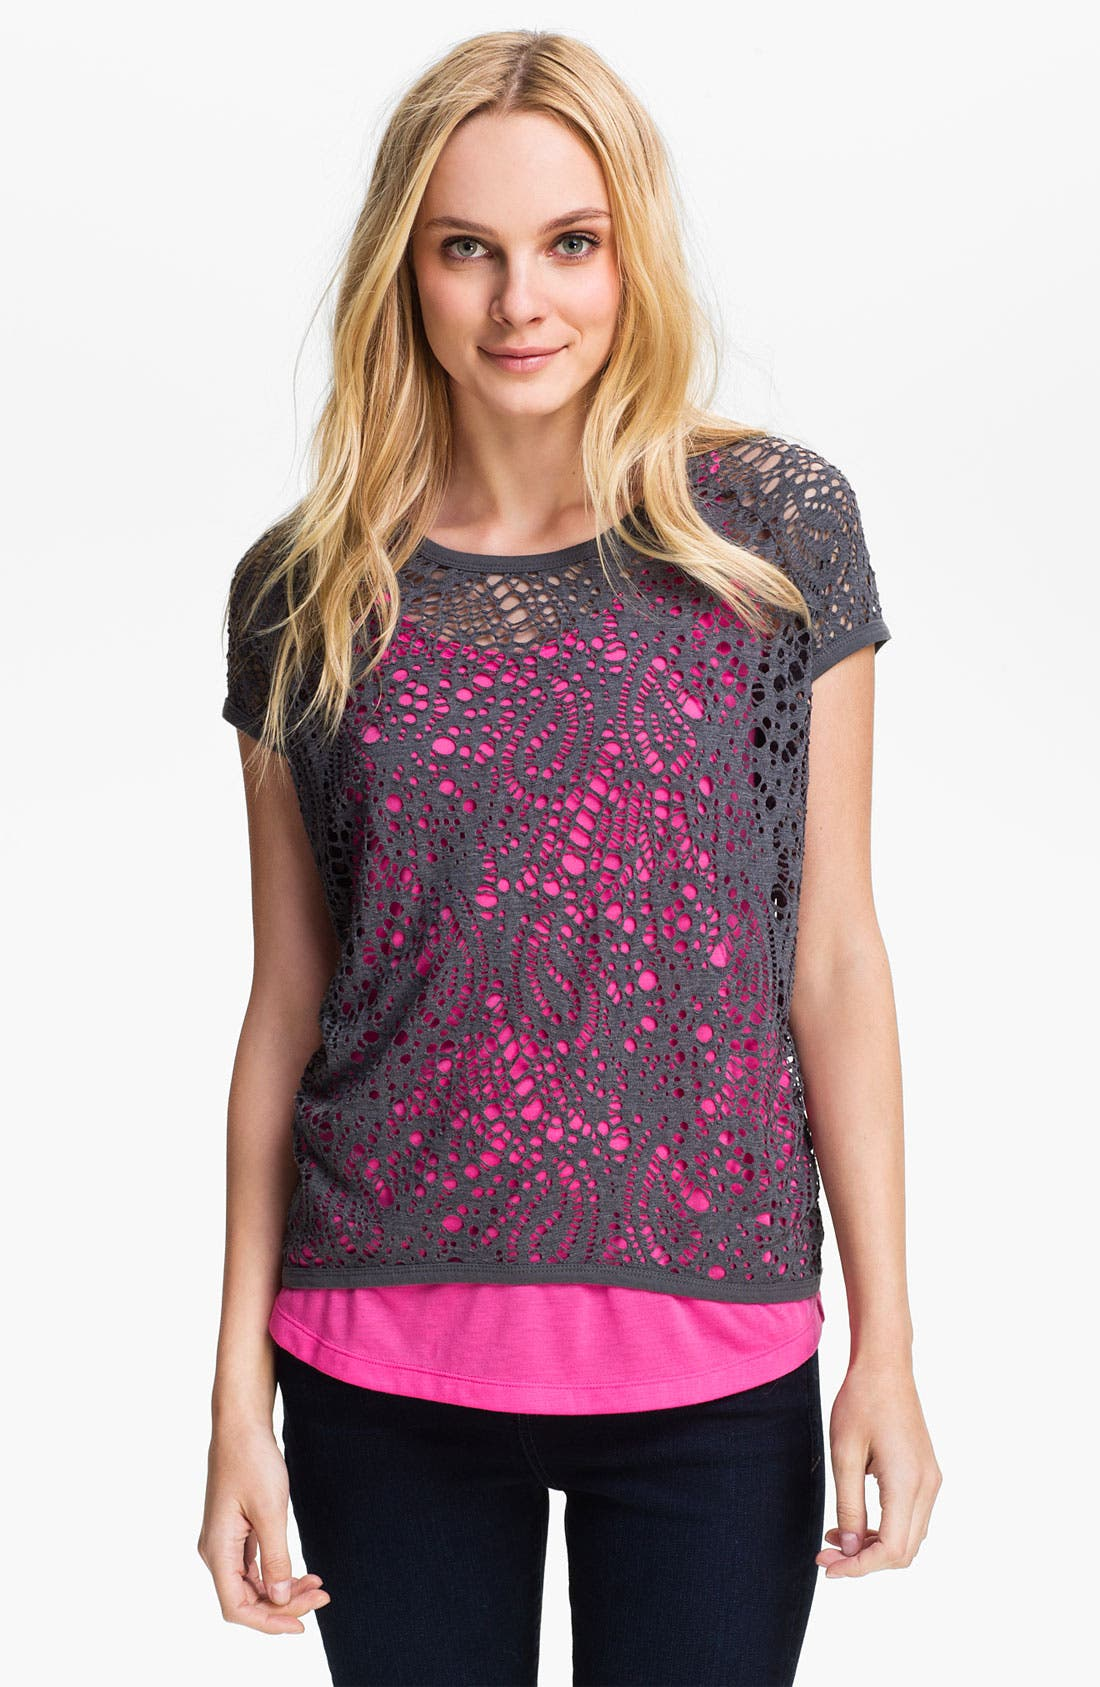 Alternate Image 1 Selected - Two by Vince Camuto Perforated Paisley Top